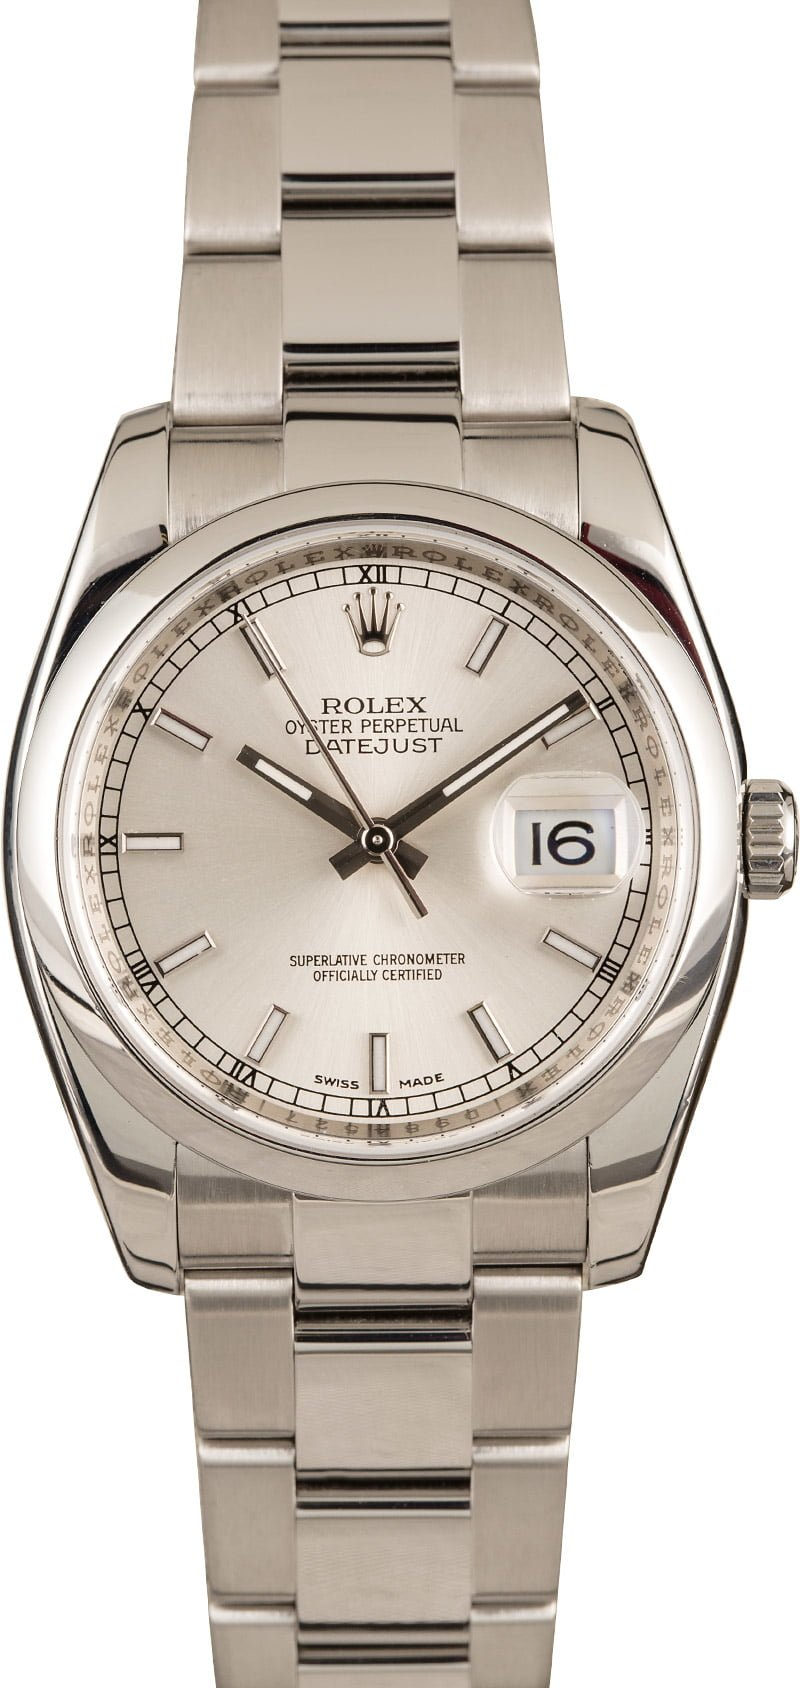 Greatest Men's Luxury Watches Guide Rolex Datejust stainless steel 36mm